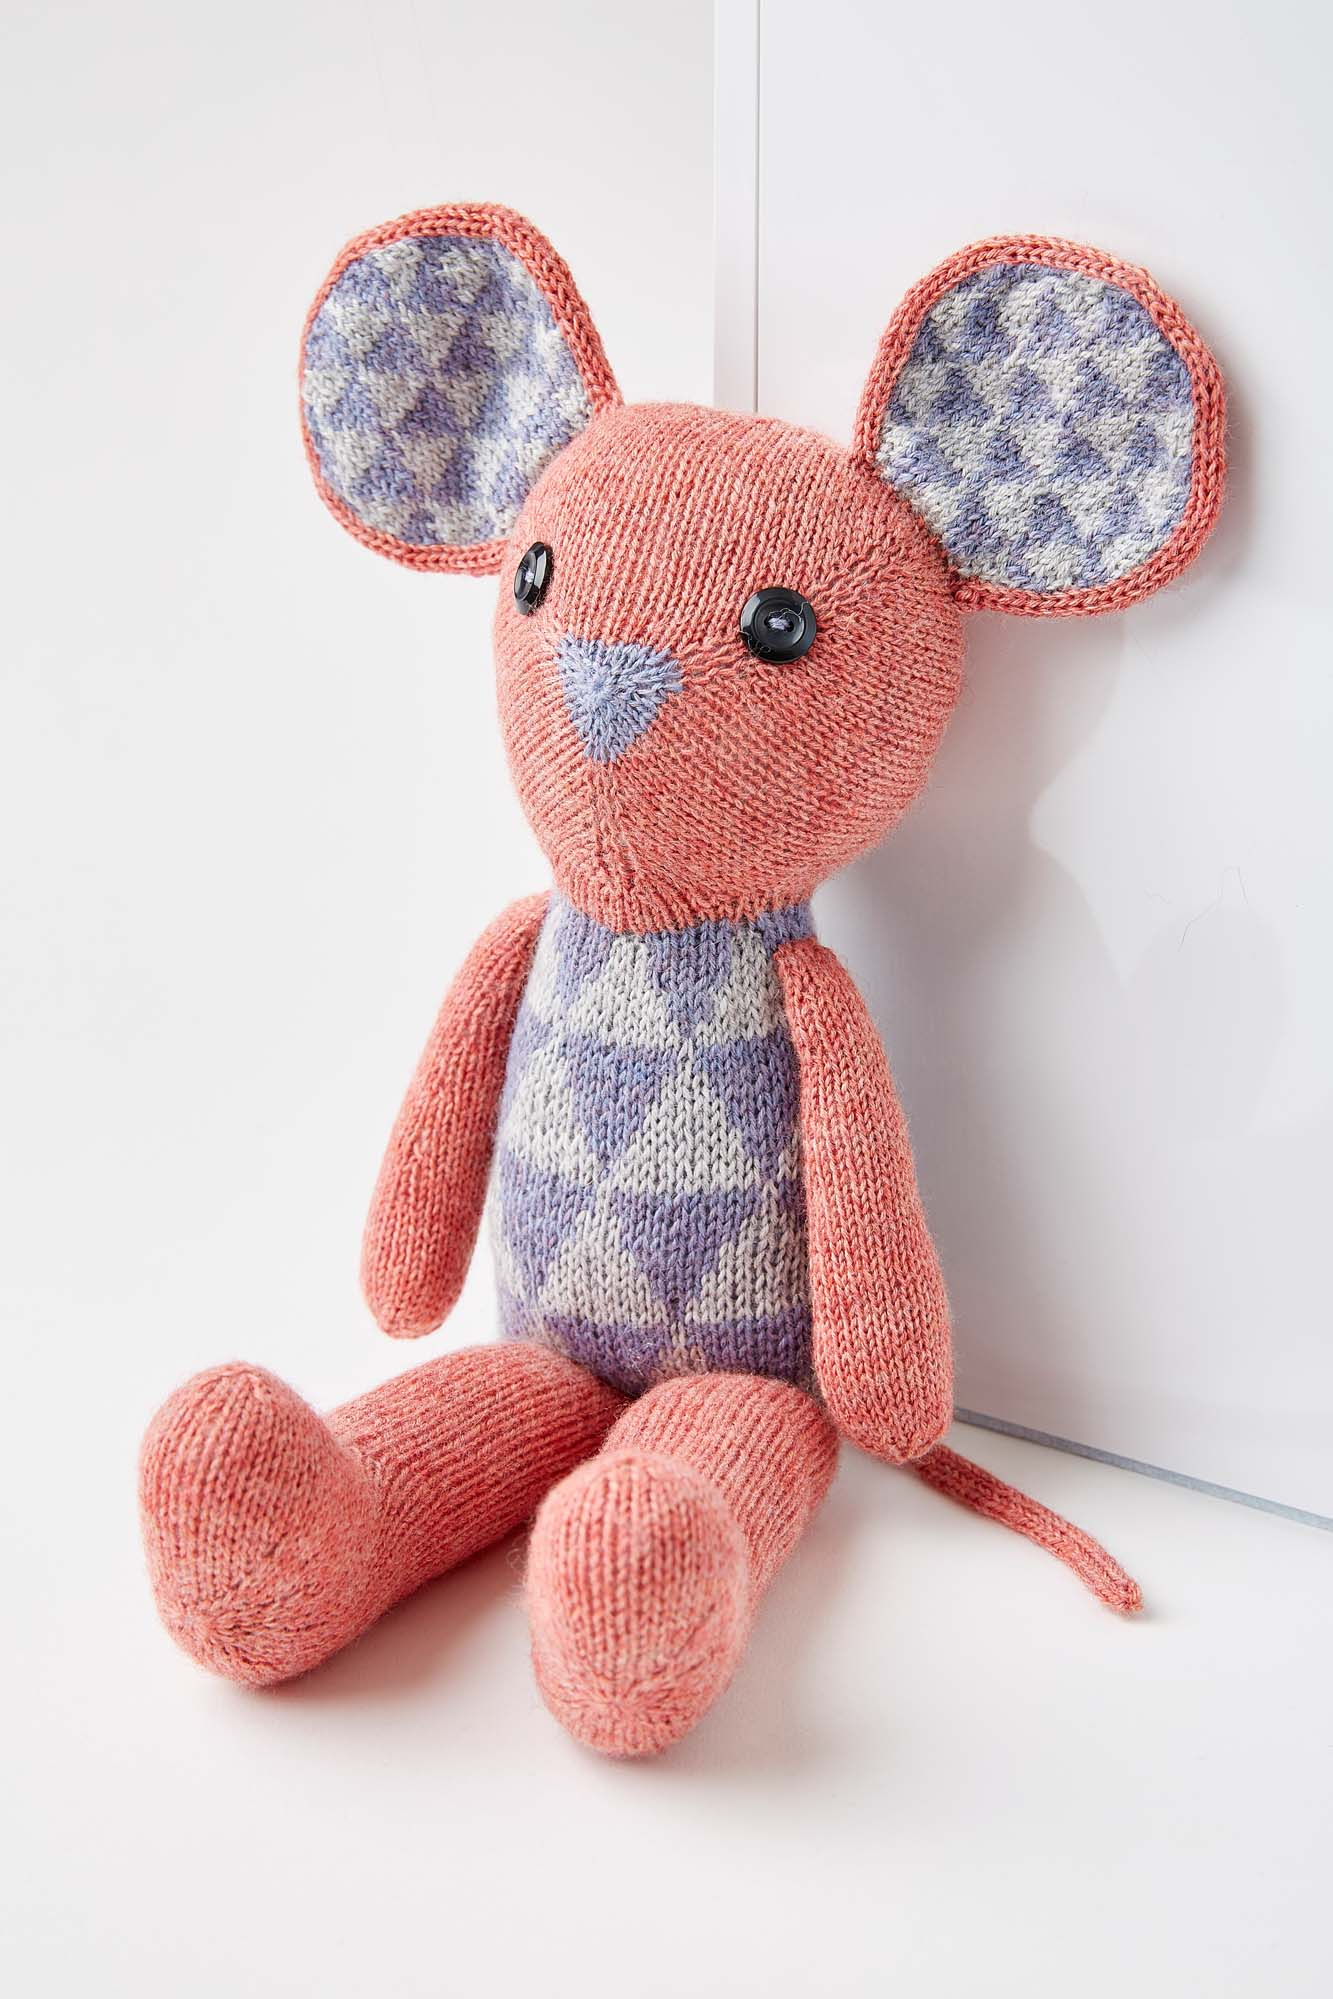 Alex the Mouse uses 3 skeins of Coop Knits Socks Yeah! in contrasting colours. Image © Jesse Wild.